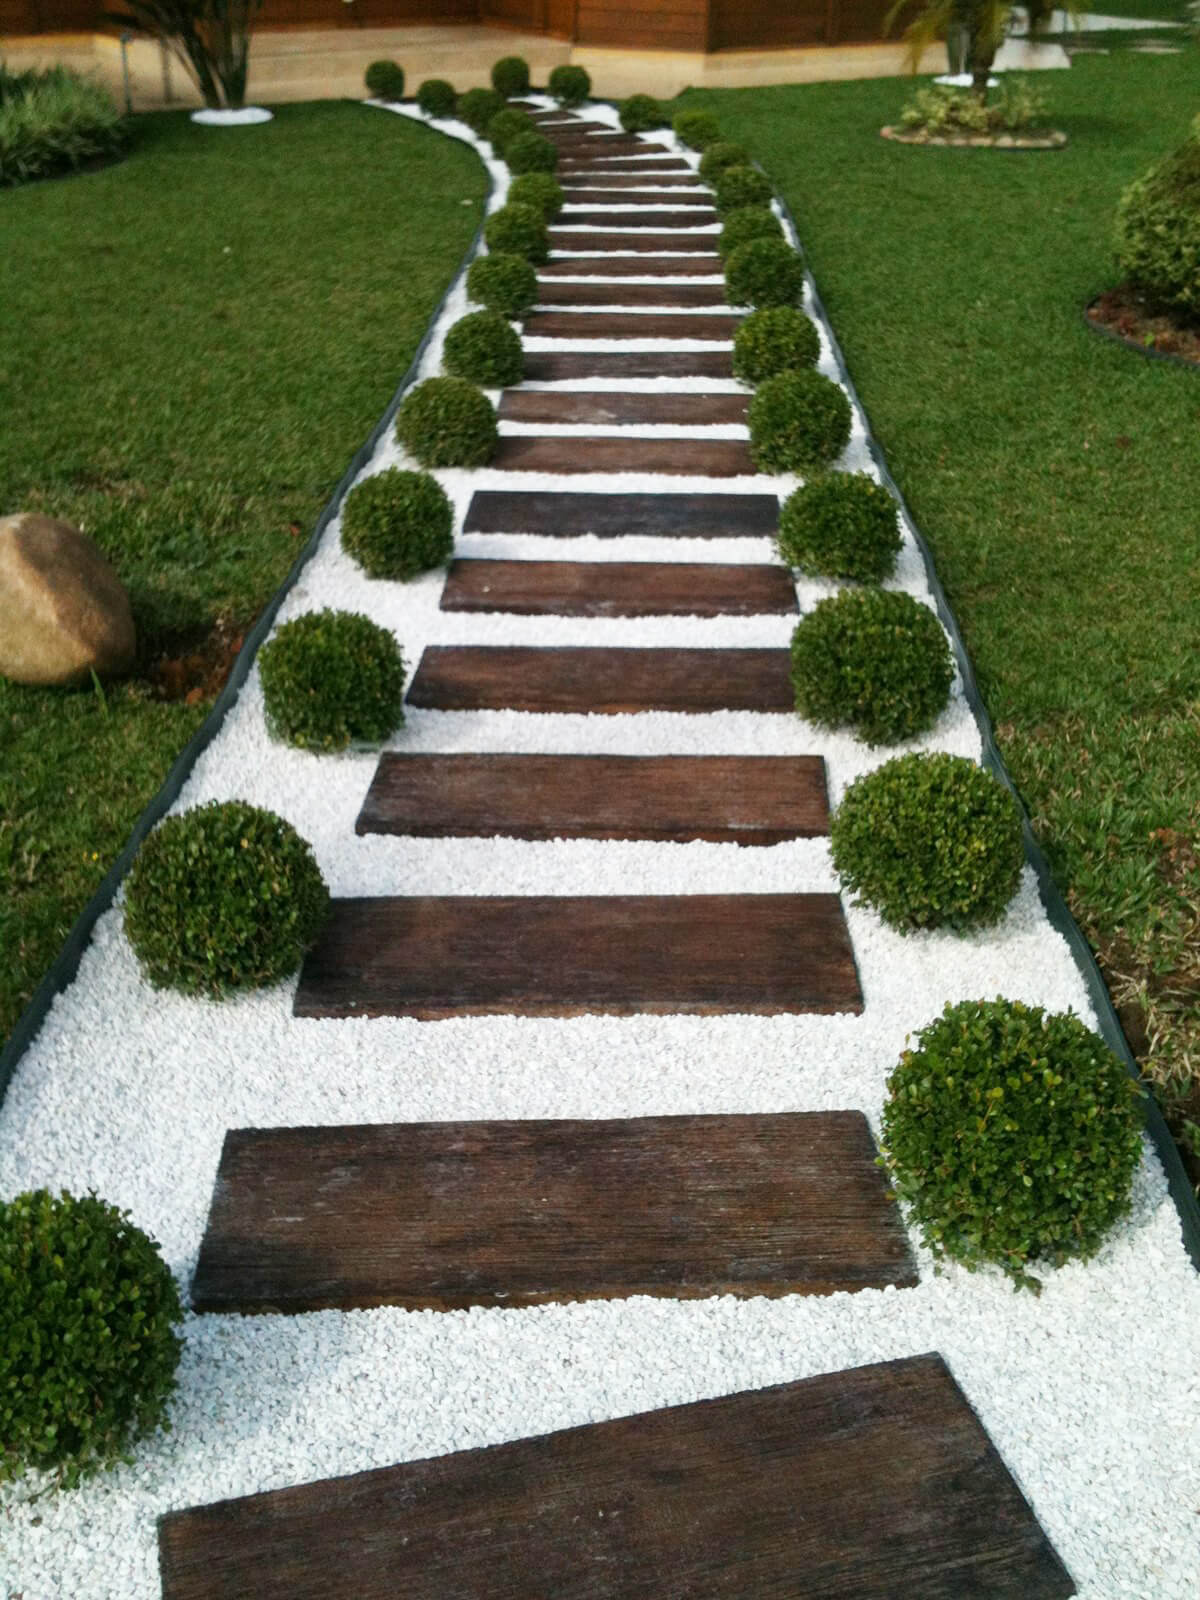 16 design ideas for beautiful garden paths style motivation